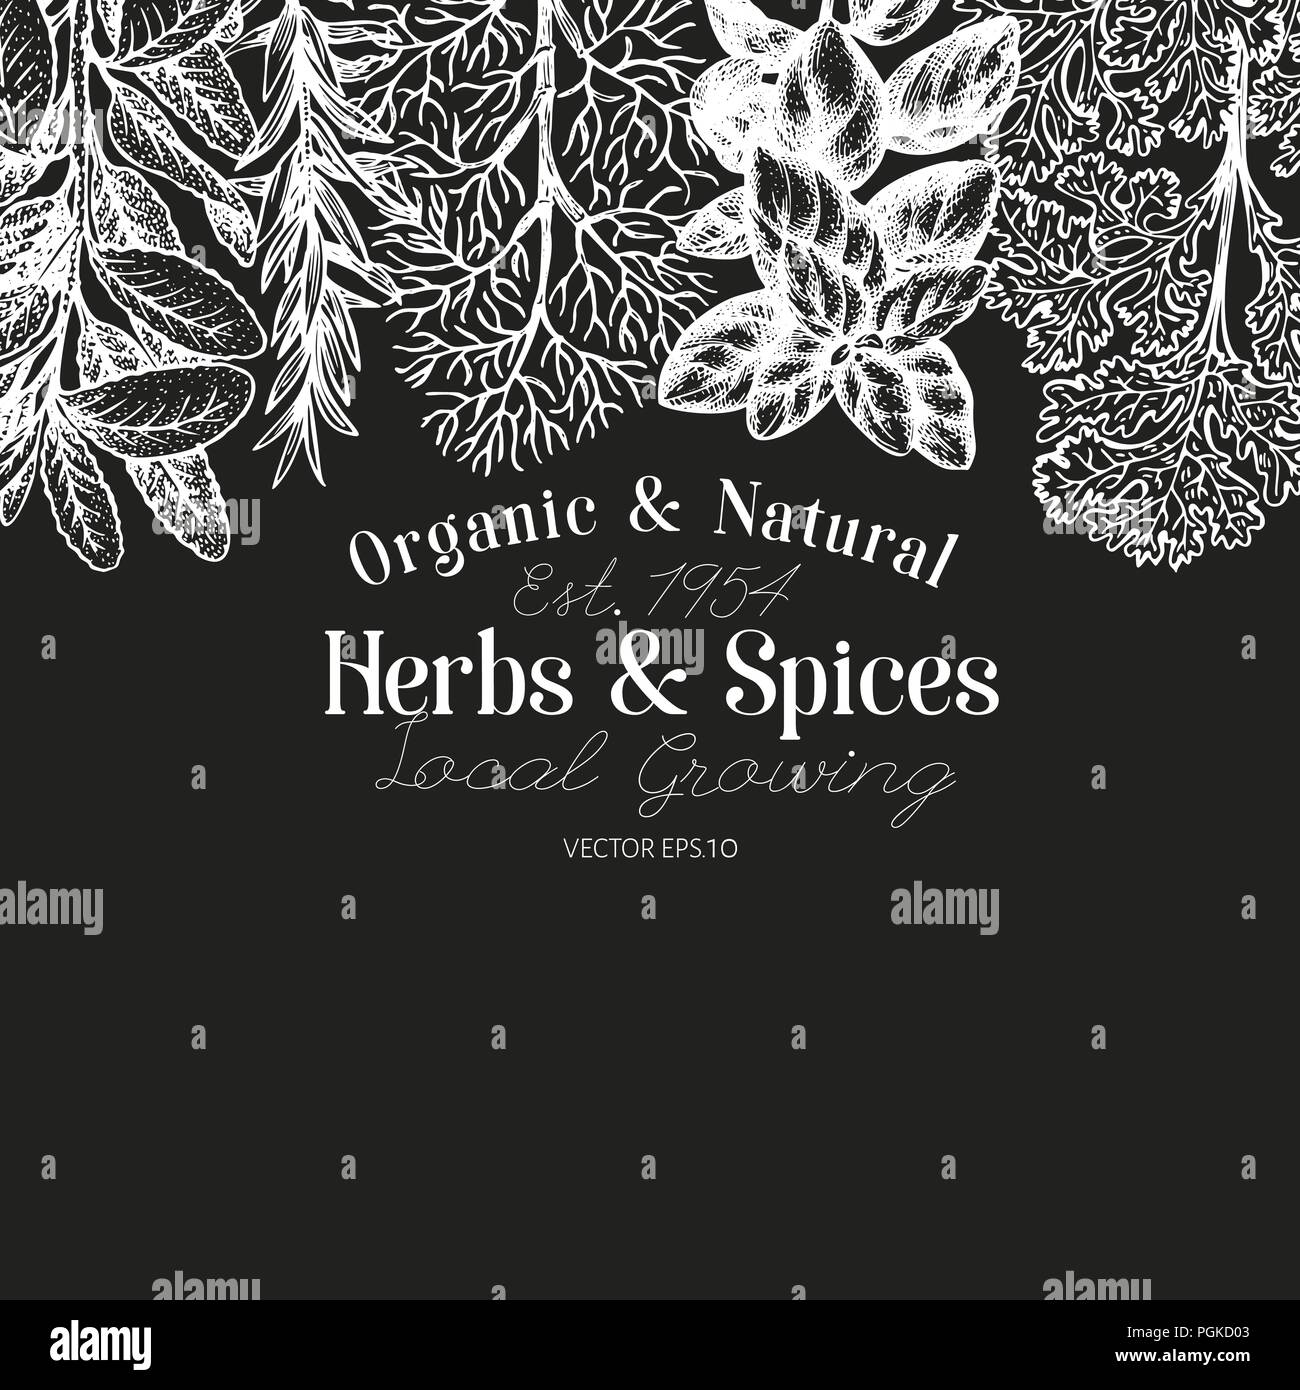 culinary herbs and spices banner template vector background for